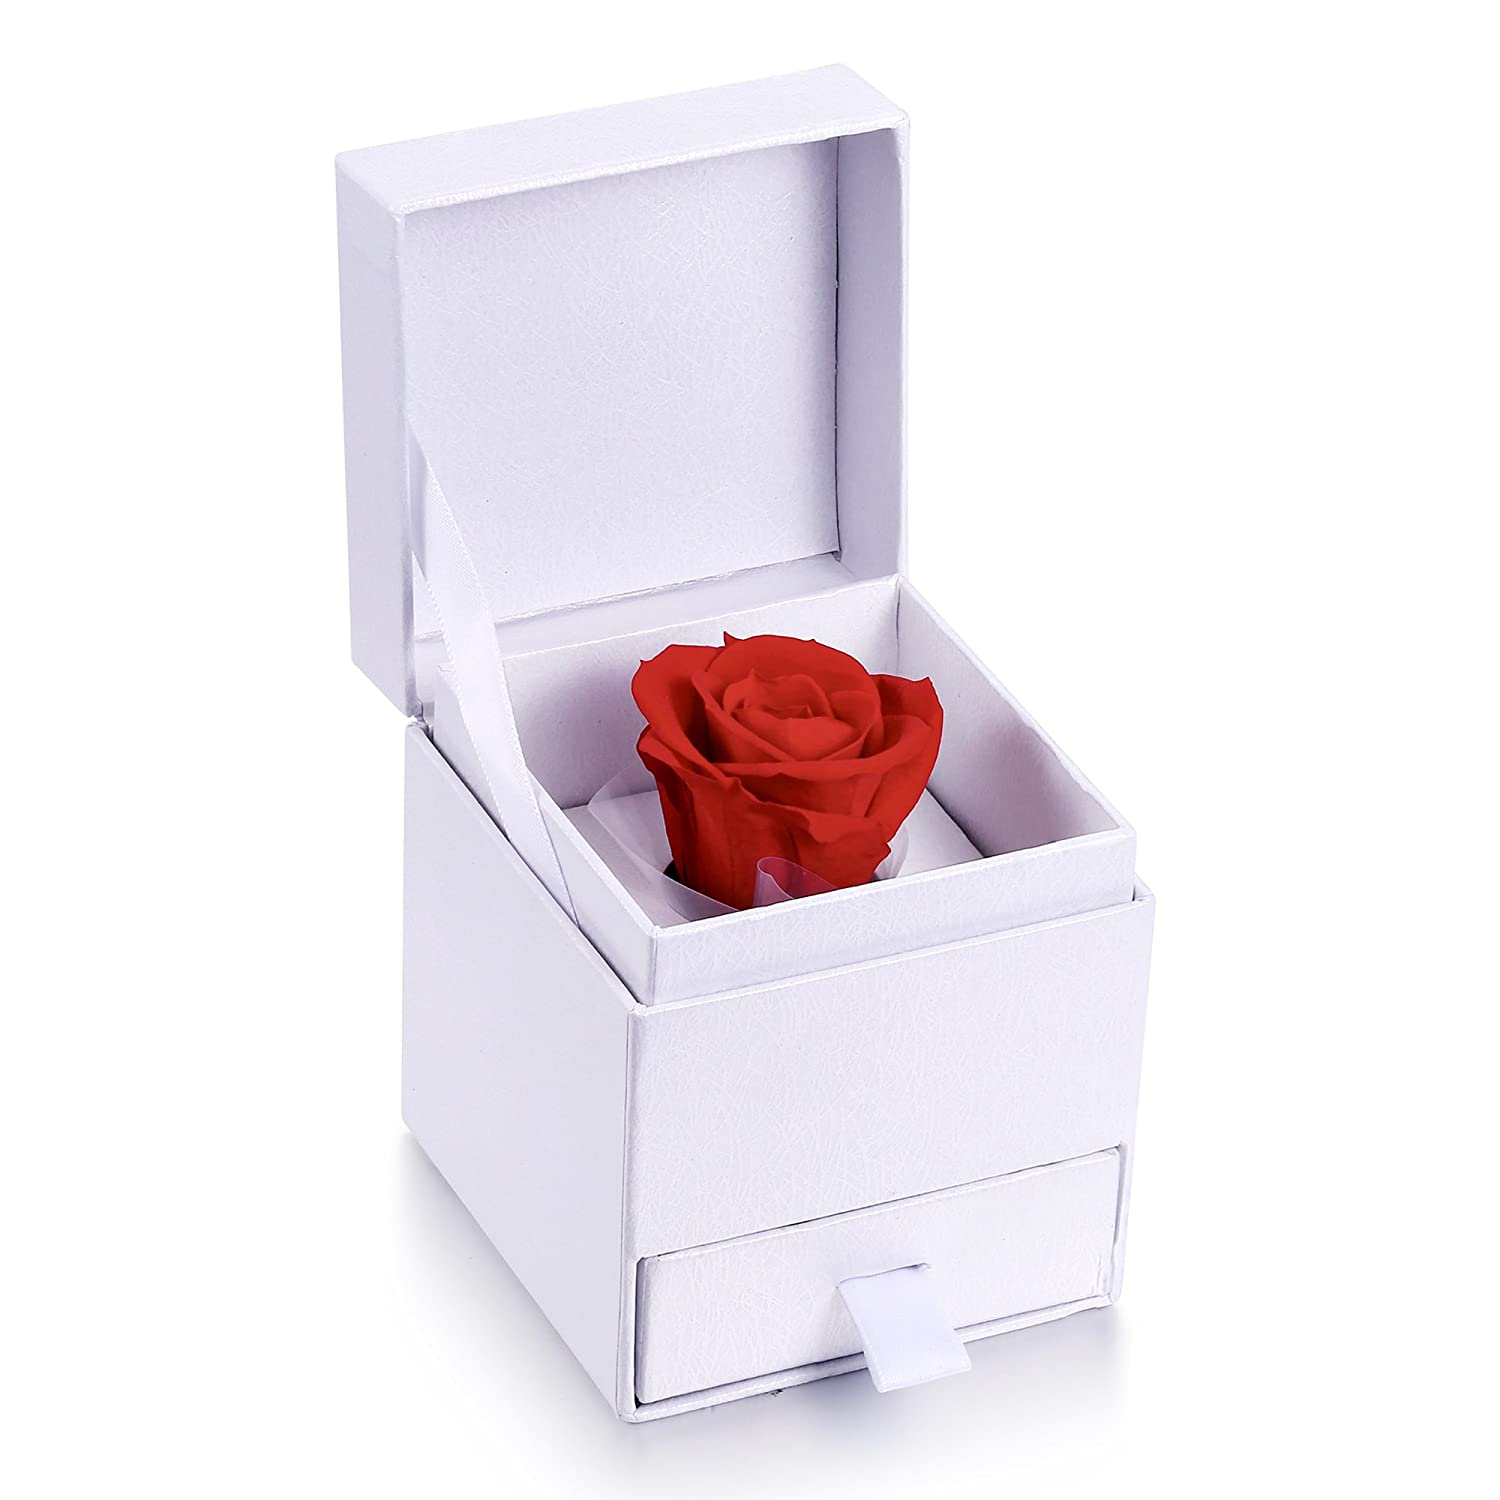 MARENJA-Mother's Day Gifts Jewellery Box with Preserved Rose for Necklace Earring Jewellery Set CA-MFB01